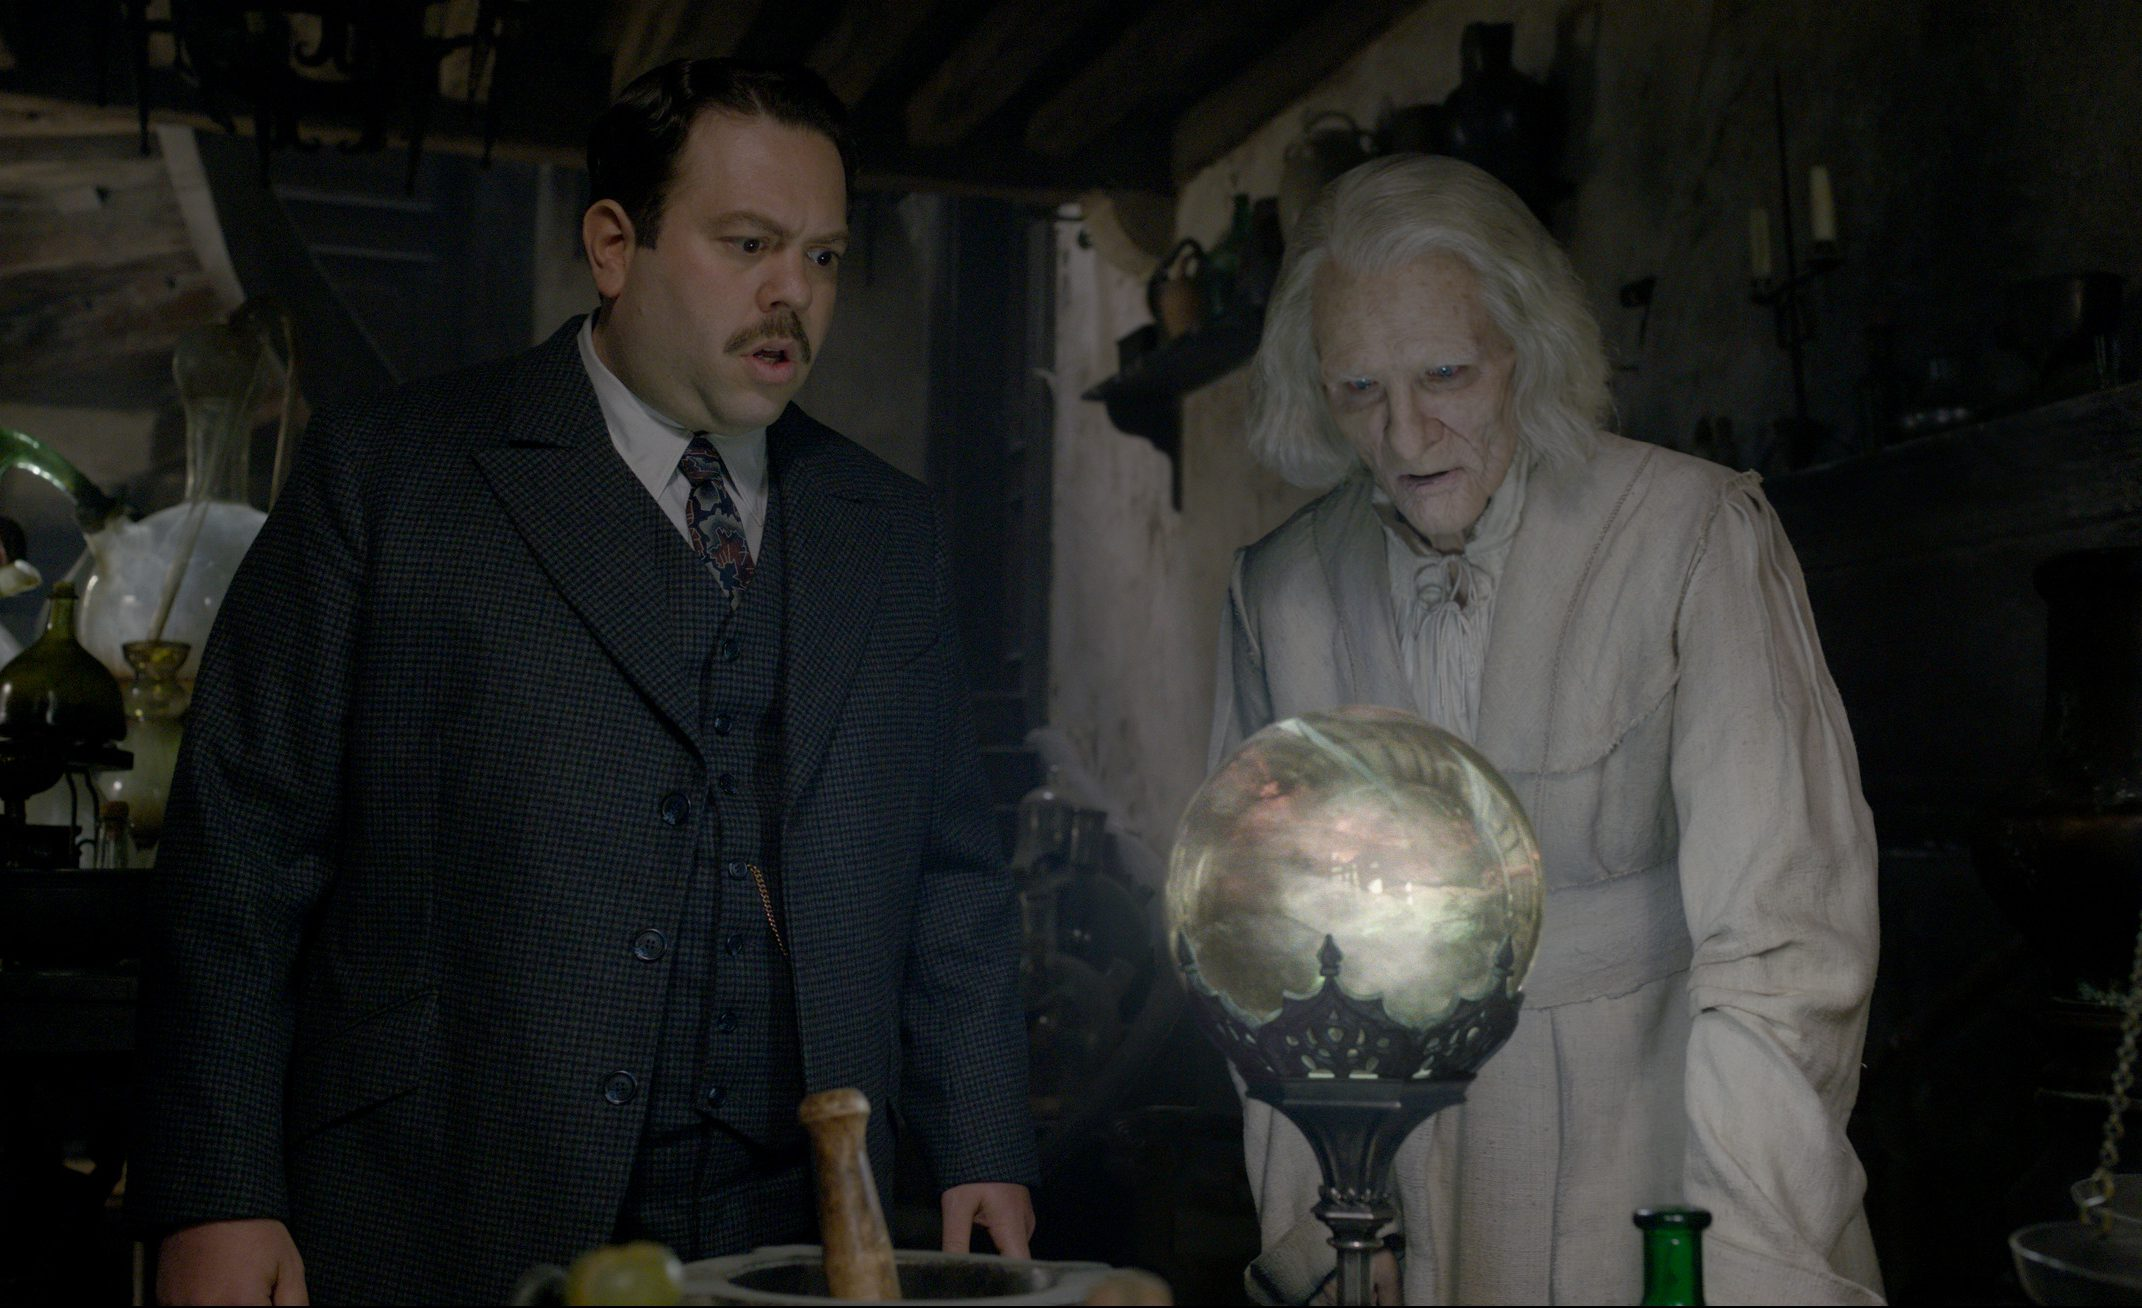 Dan Fogler and Brontis Jodorowsky in The Crimes of Grindelwald